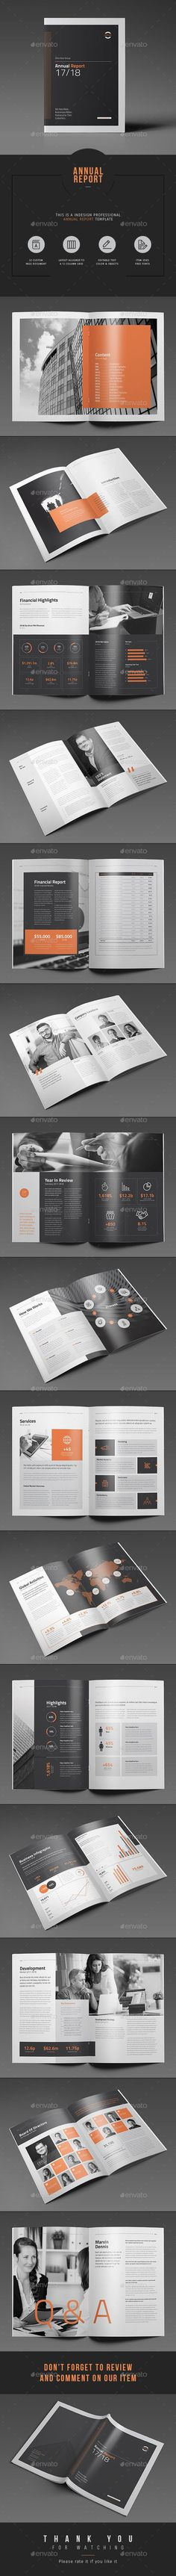 Annual Report Template InDesign INDD. Download here: https://graphicriver.net/item/annual-report/17559077?ref=ksioks